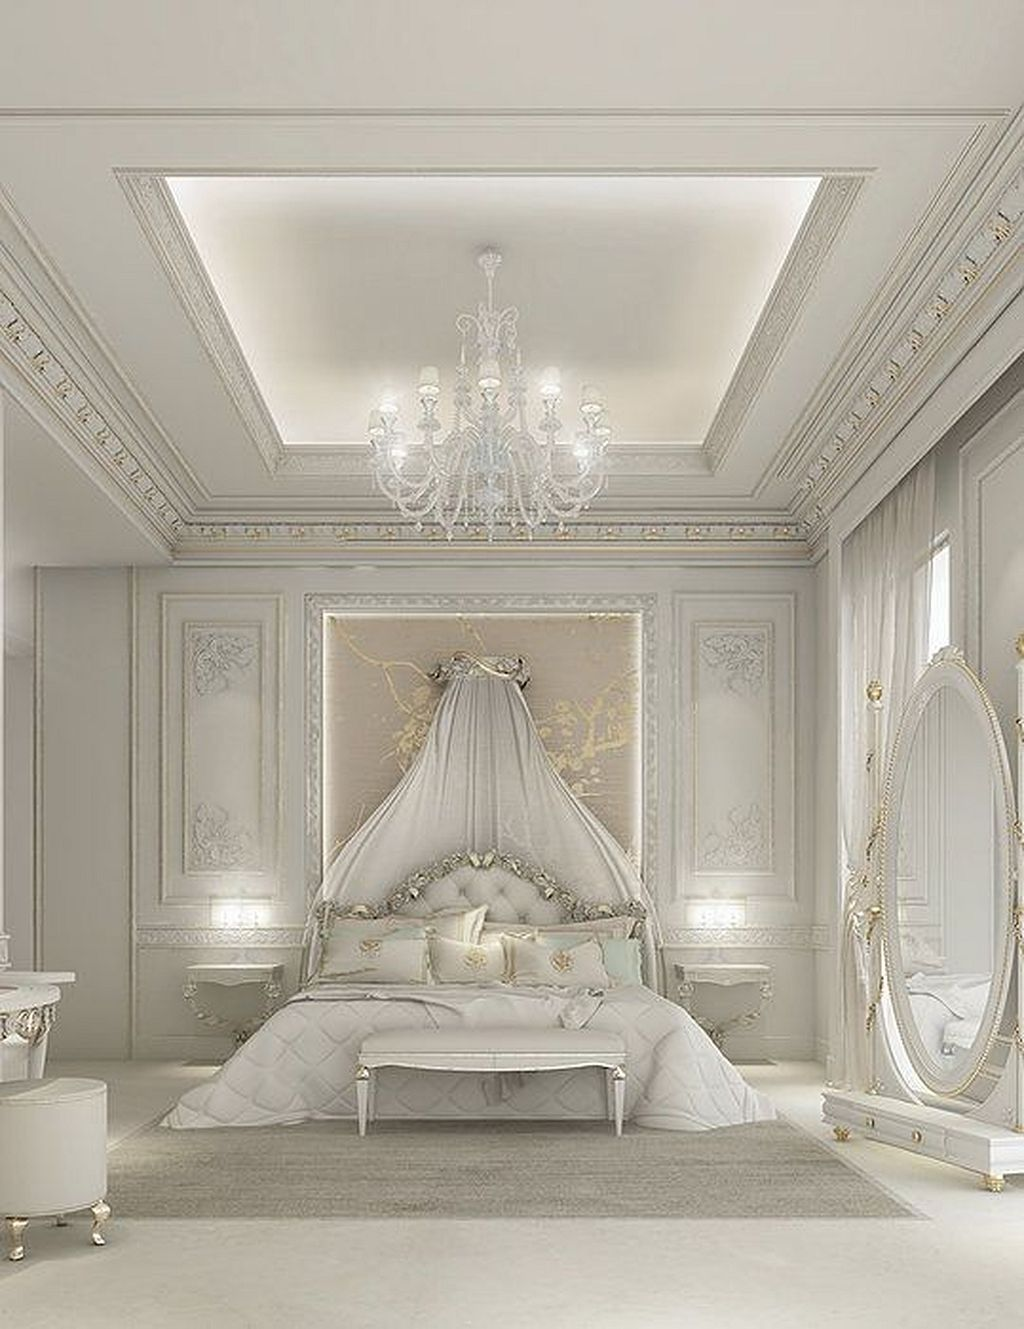 Stunning 166 Luxury Bedrooms You Would Like To Try Https Pinarchitecture Com 166 Luxury Bedrooms Yo Luxurious Bedrooms Luxury Bedroom Design Bedroom Interior Master bed luxury bedroom